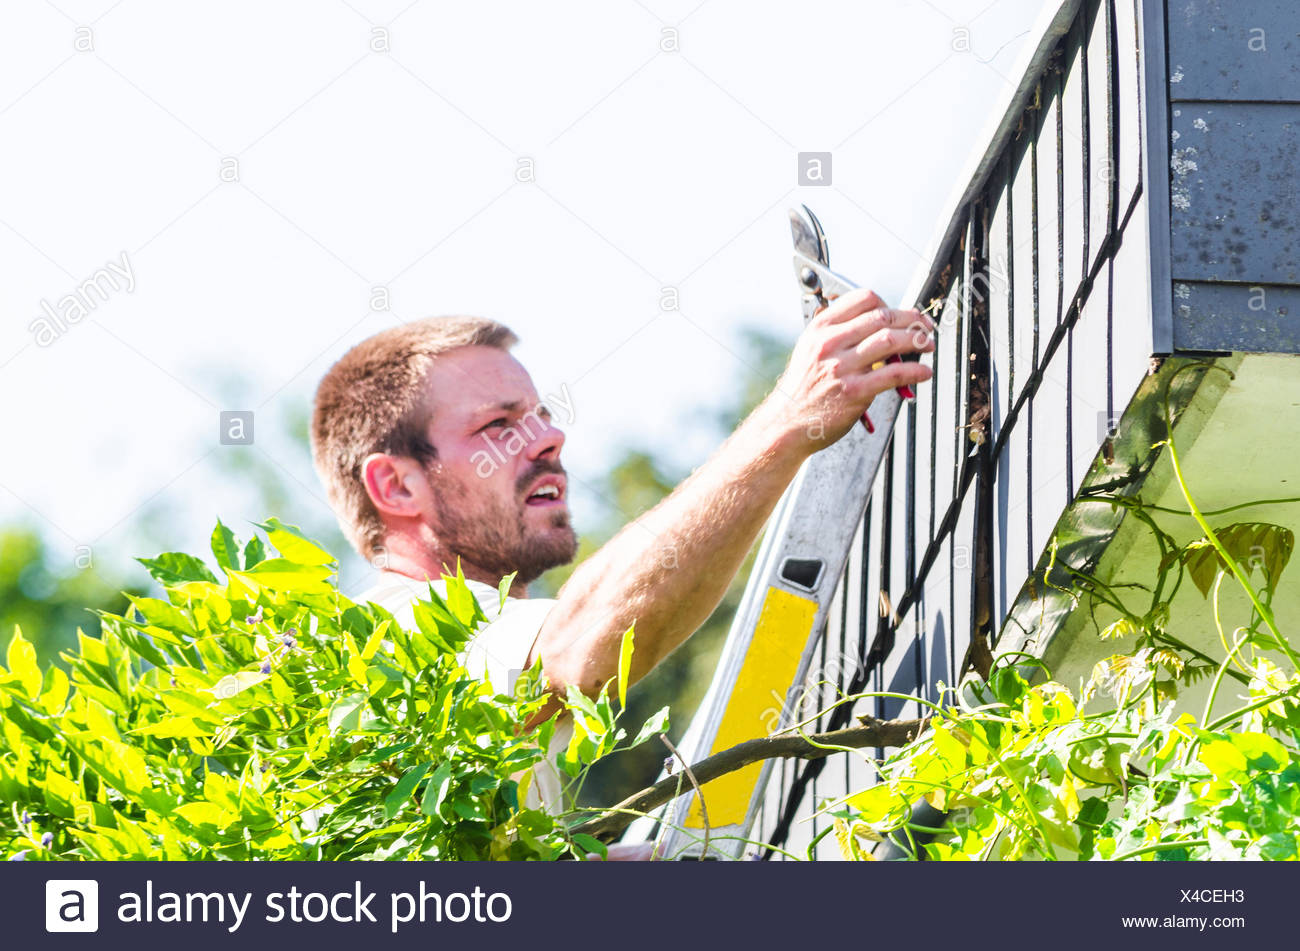 Trimming an ivy with hedge trimmer. - Stock Image